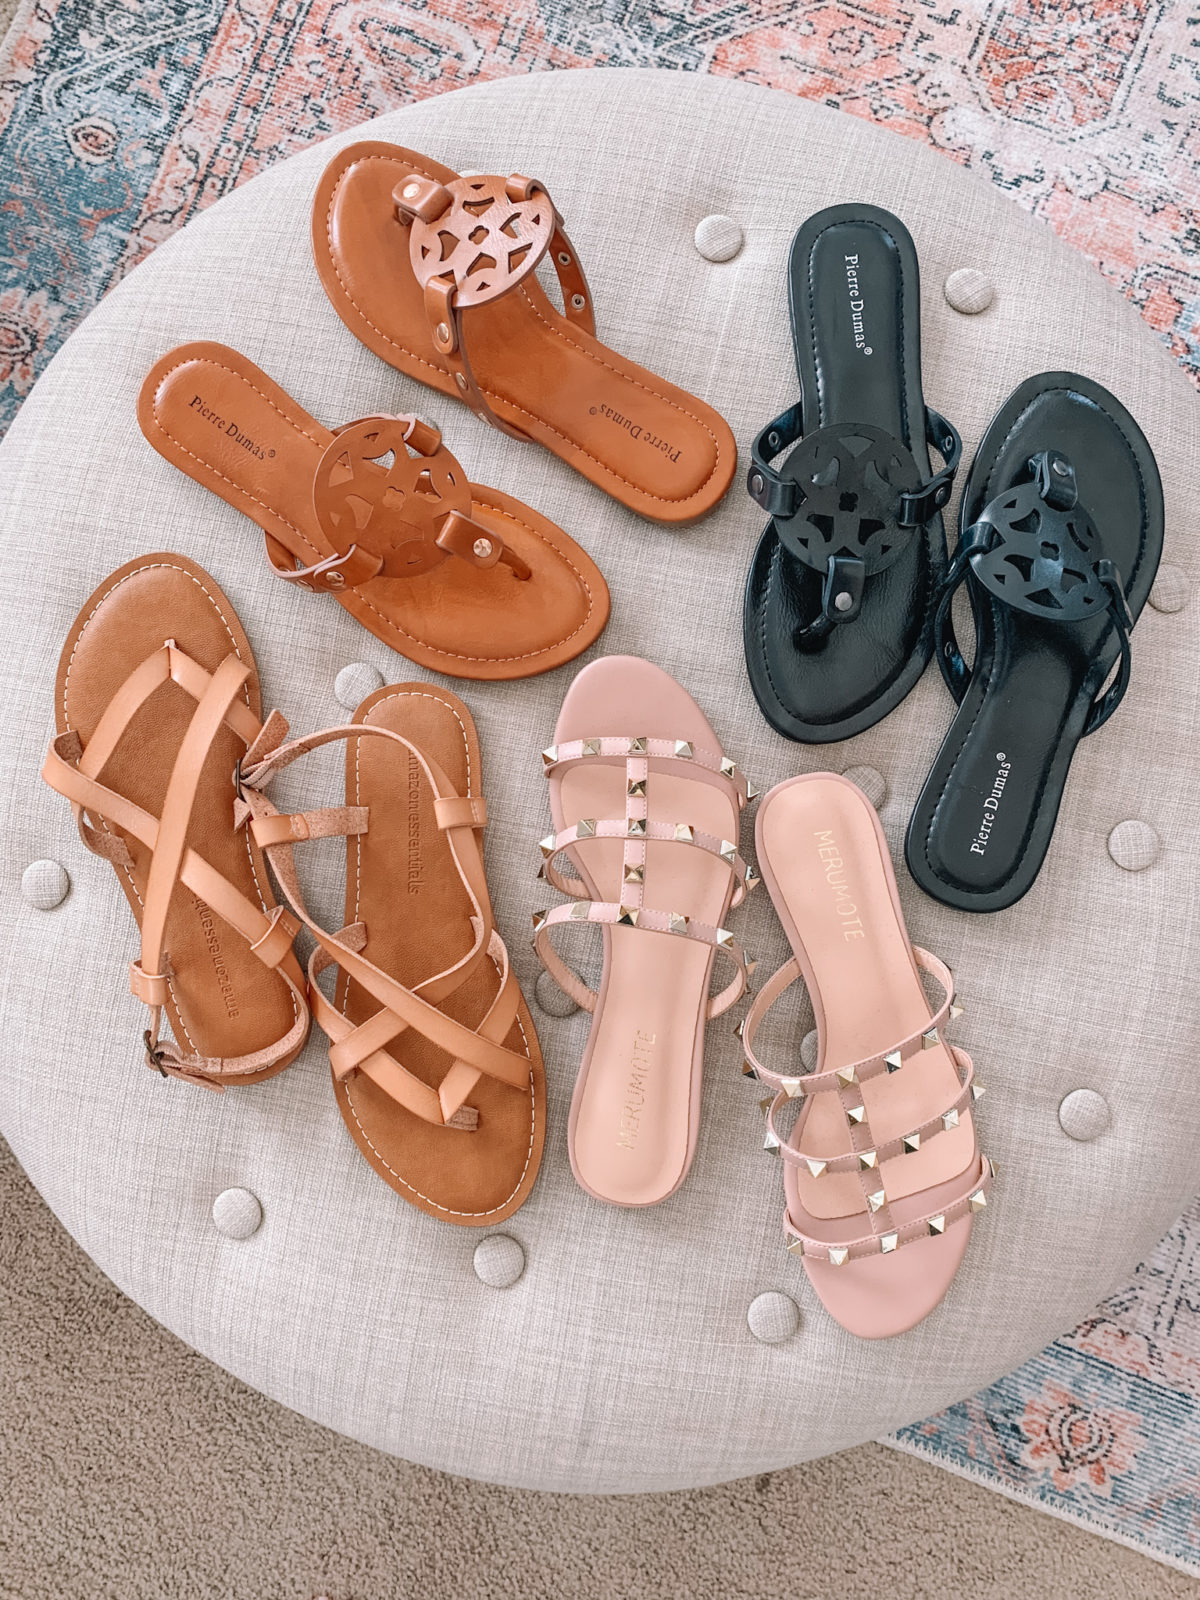 Amazon Fashion Faves, Sandals